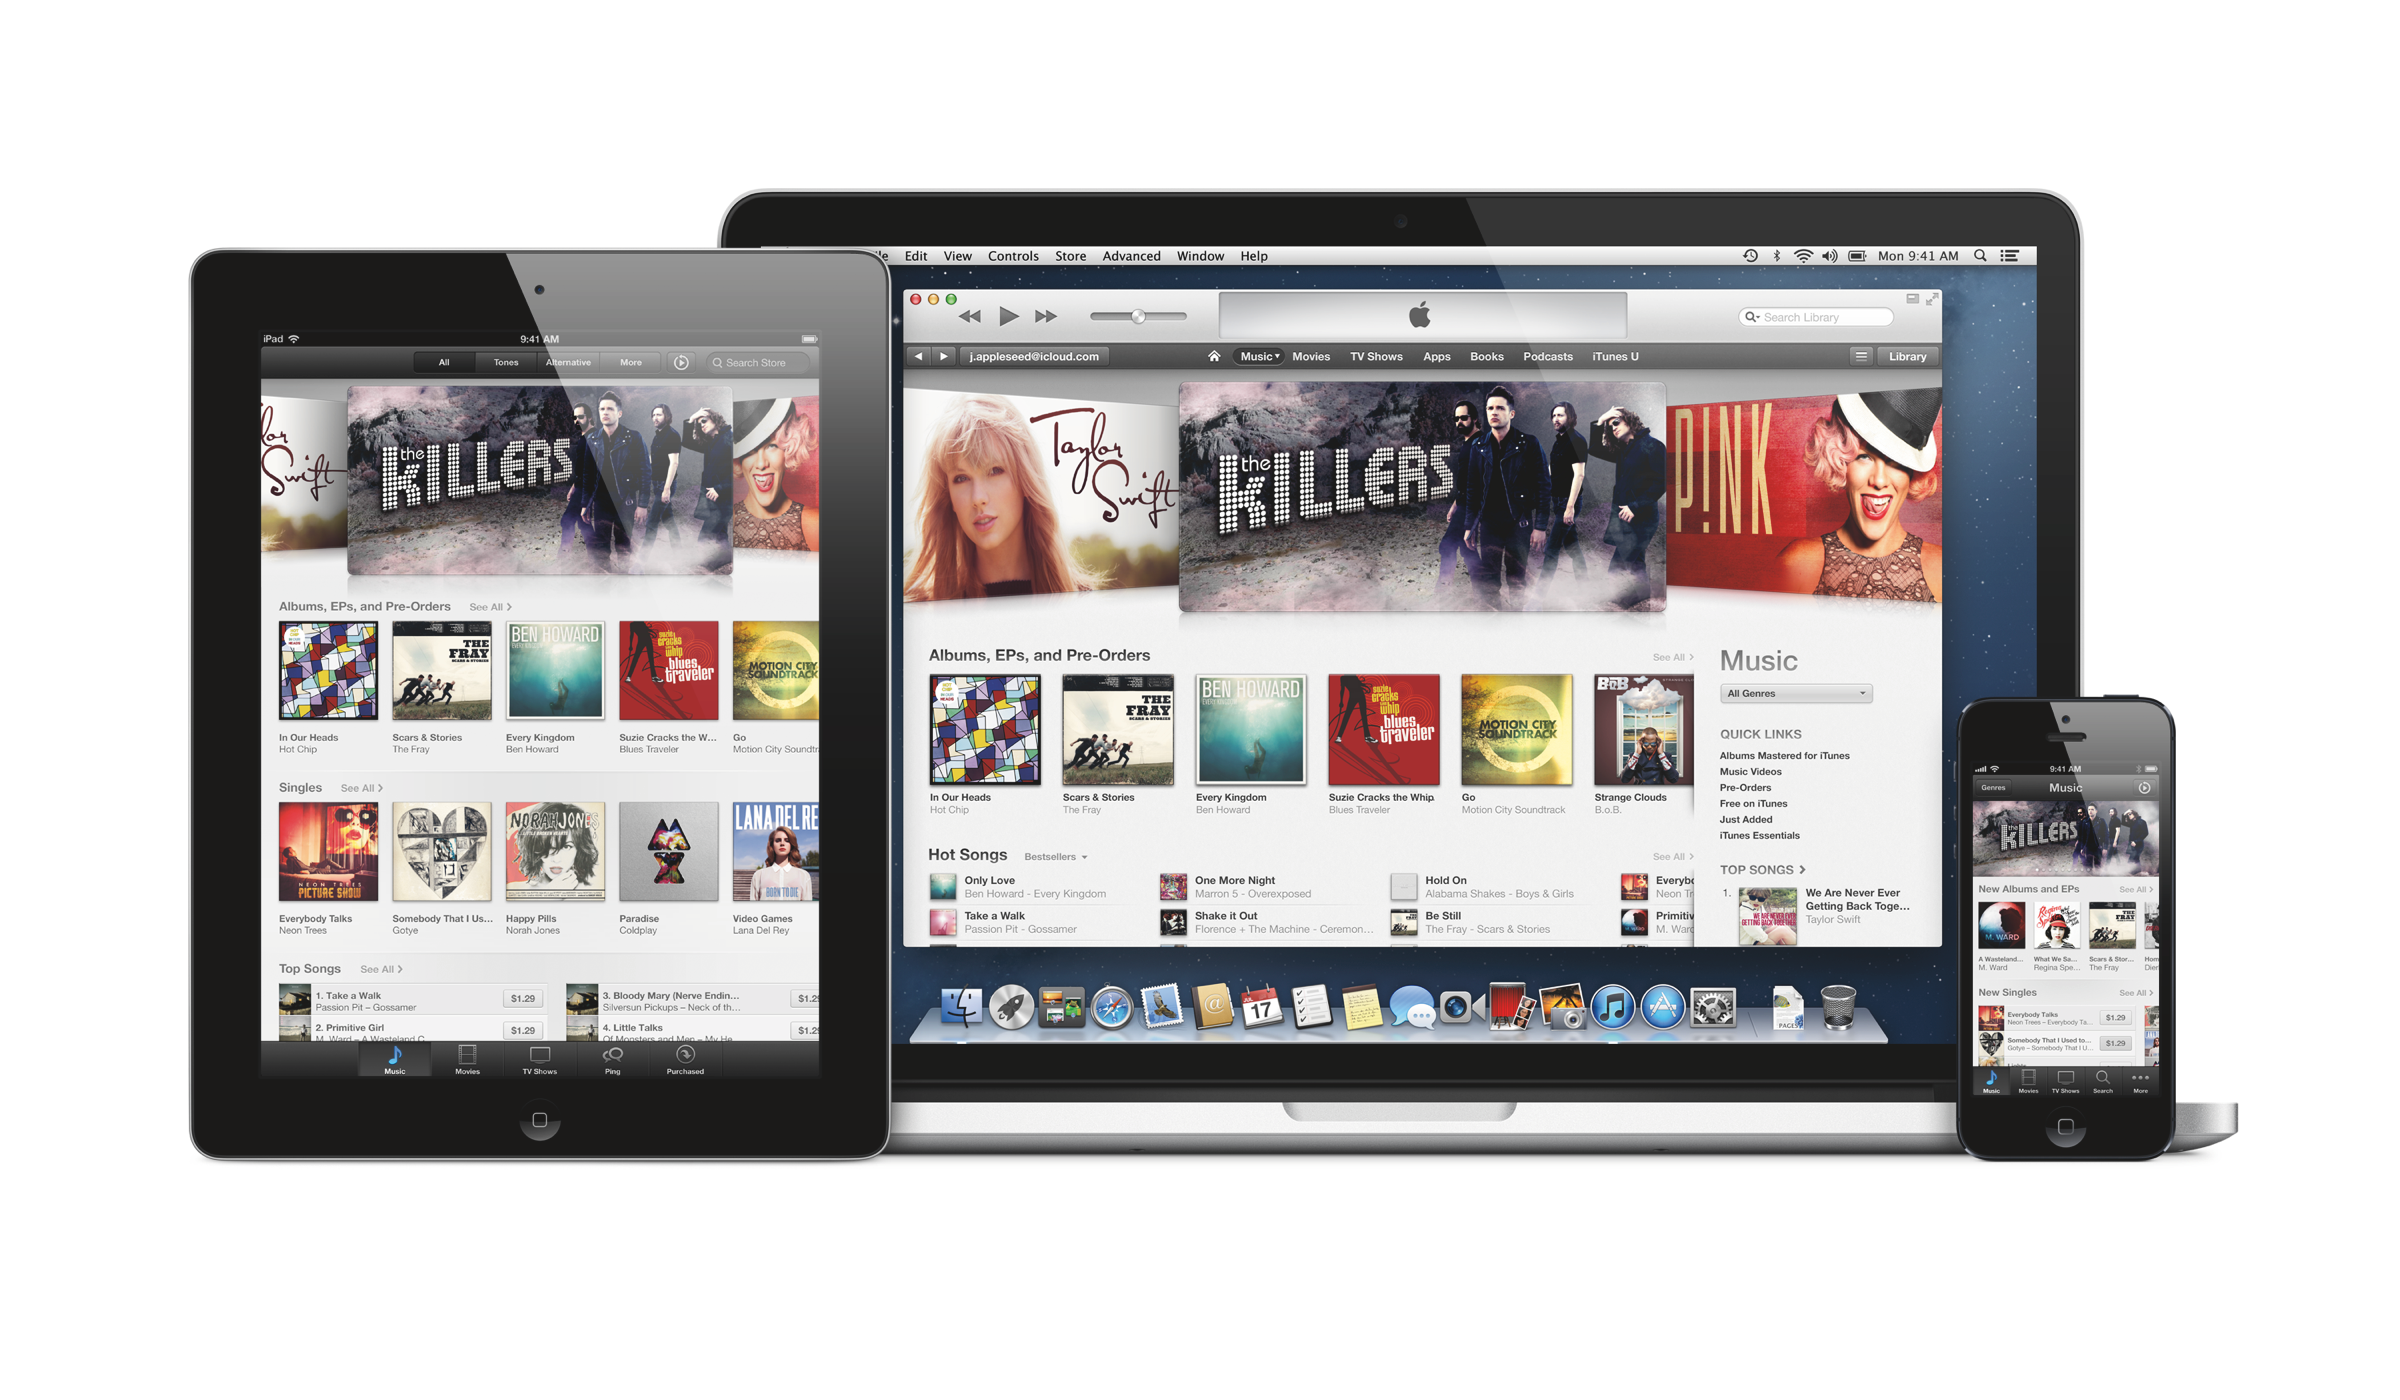 iTunes on iPad, Mac, and iPhone